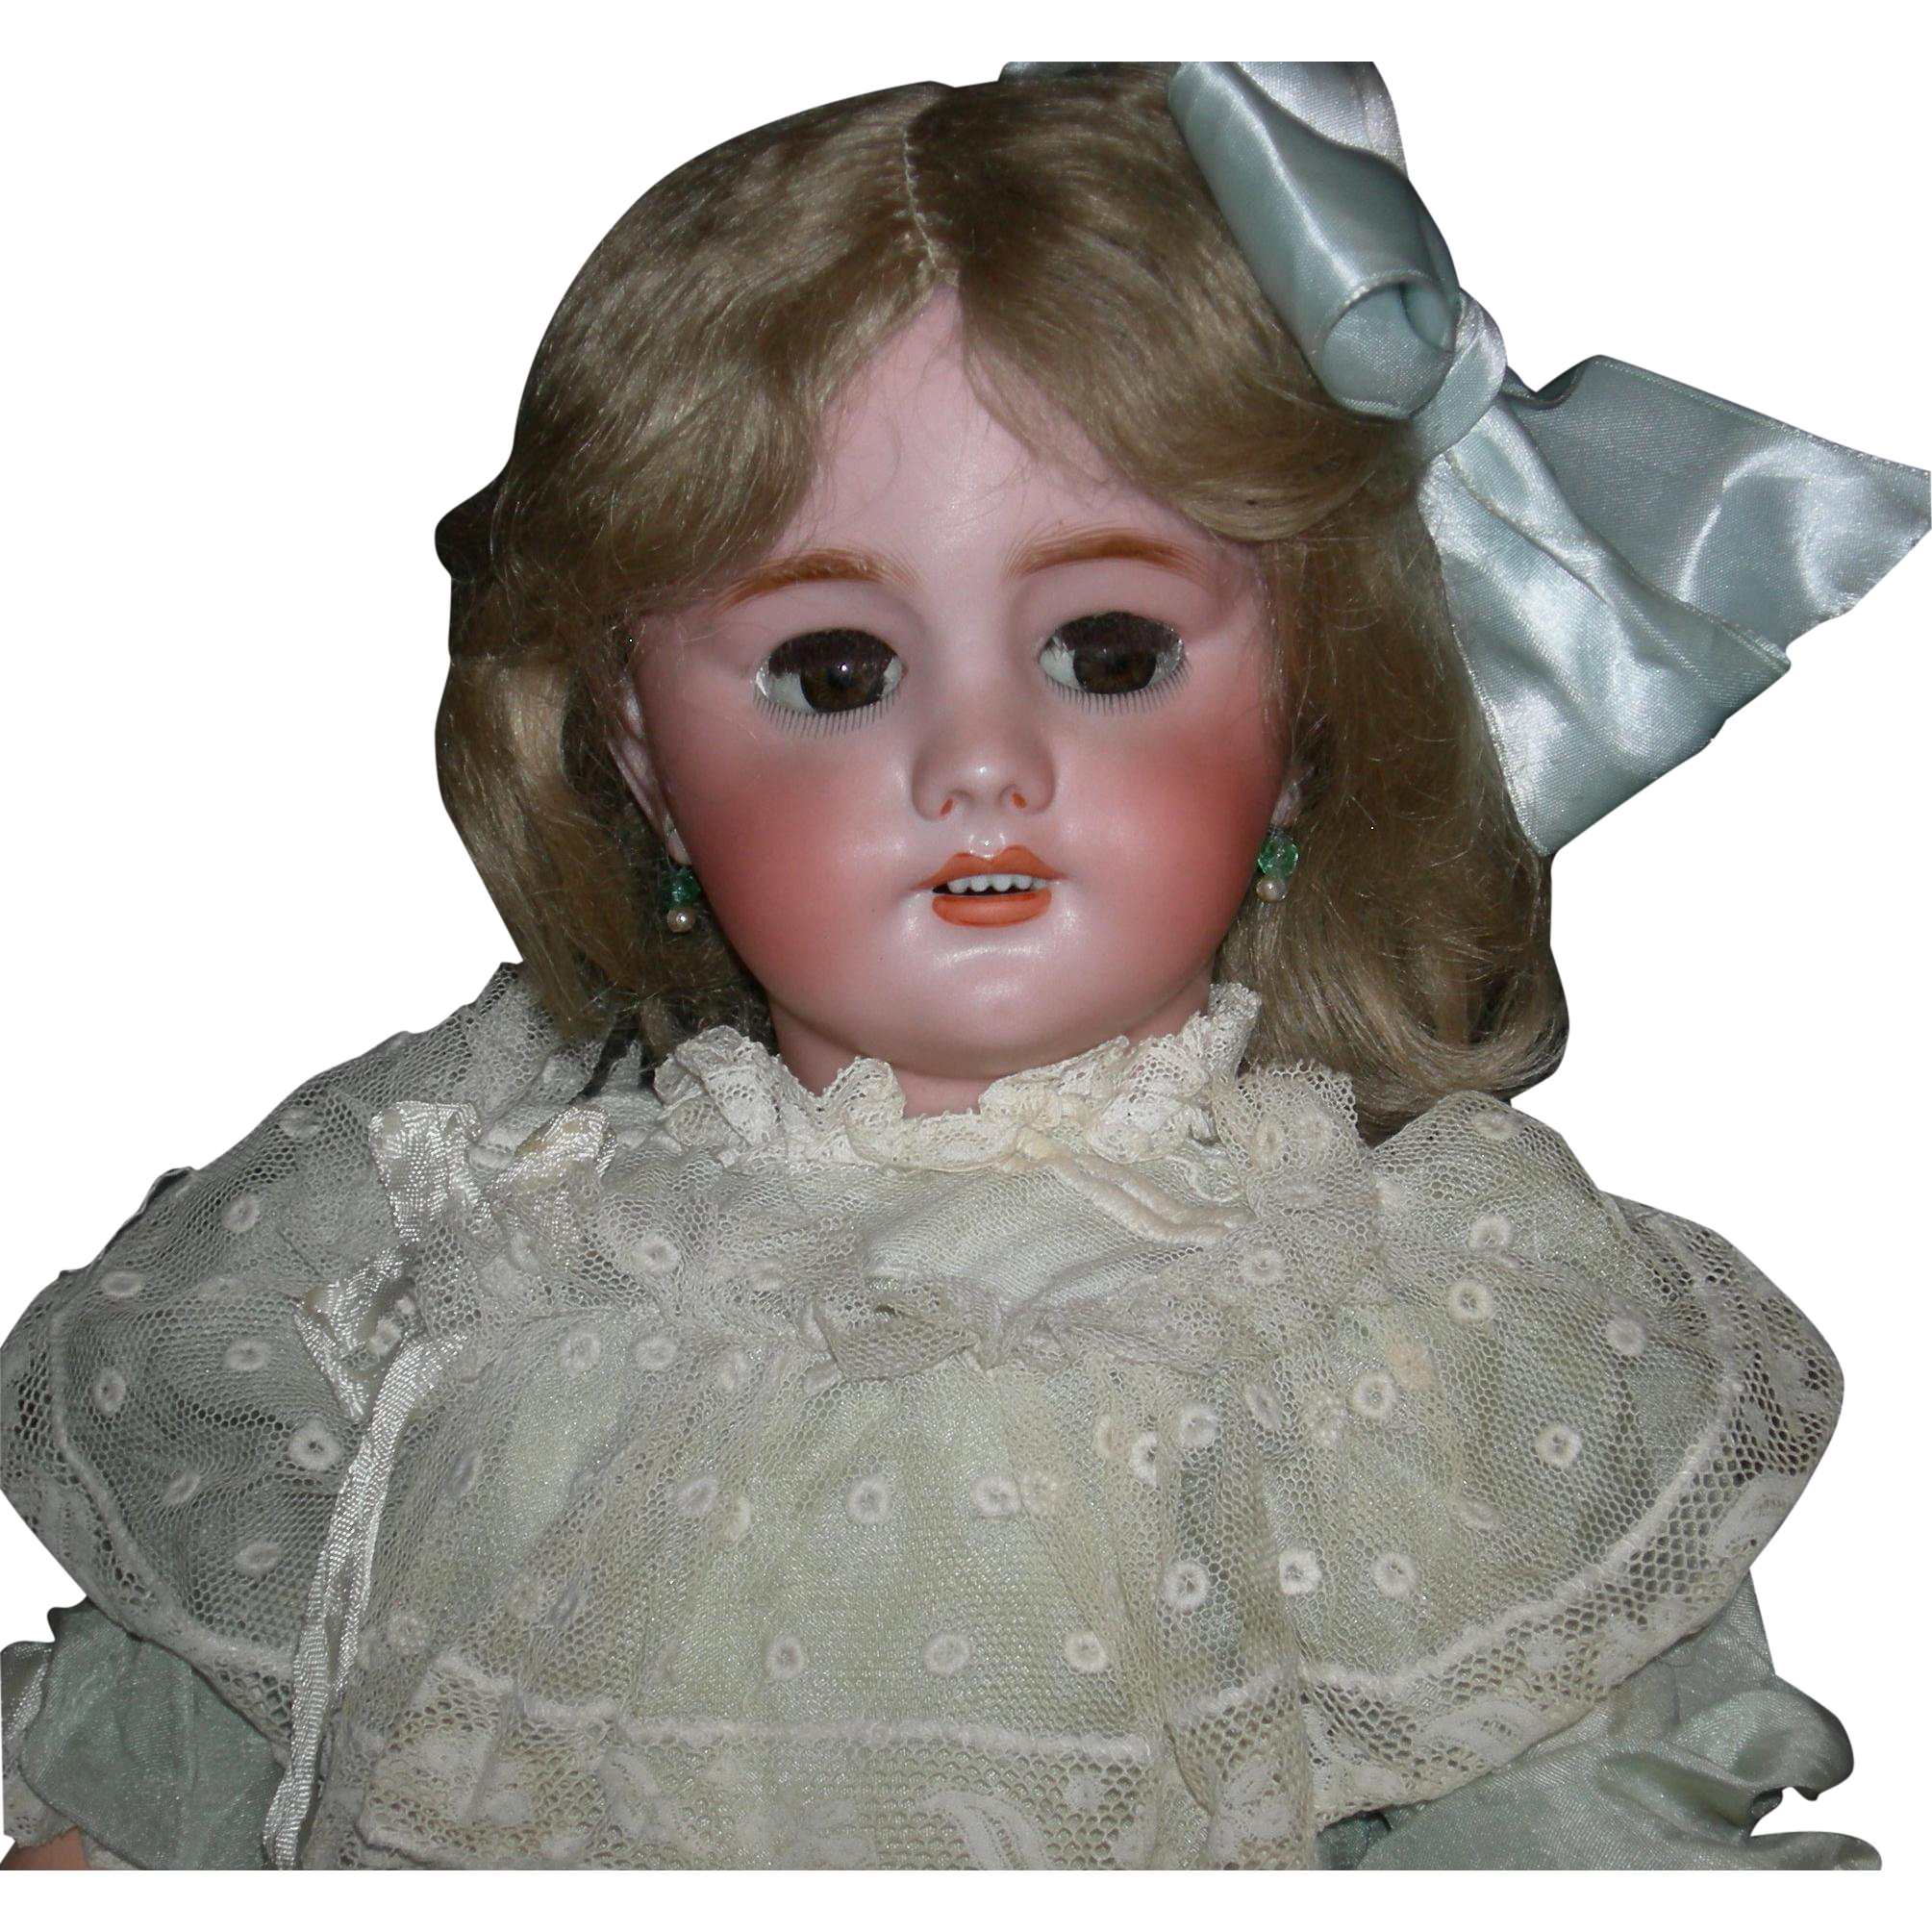 "FRENCH  DEP 9 - Brown Sleep Eyes w/ Real Hair Eyelashes - Pierced Ears w/ Earrings - Original Body Finish - 21"" - Pretty Clothes!!"